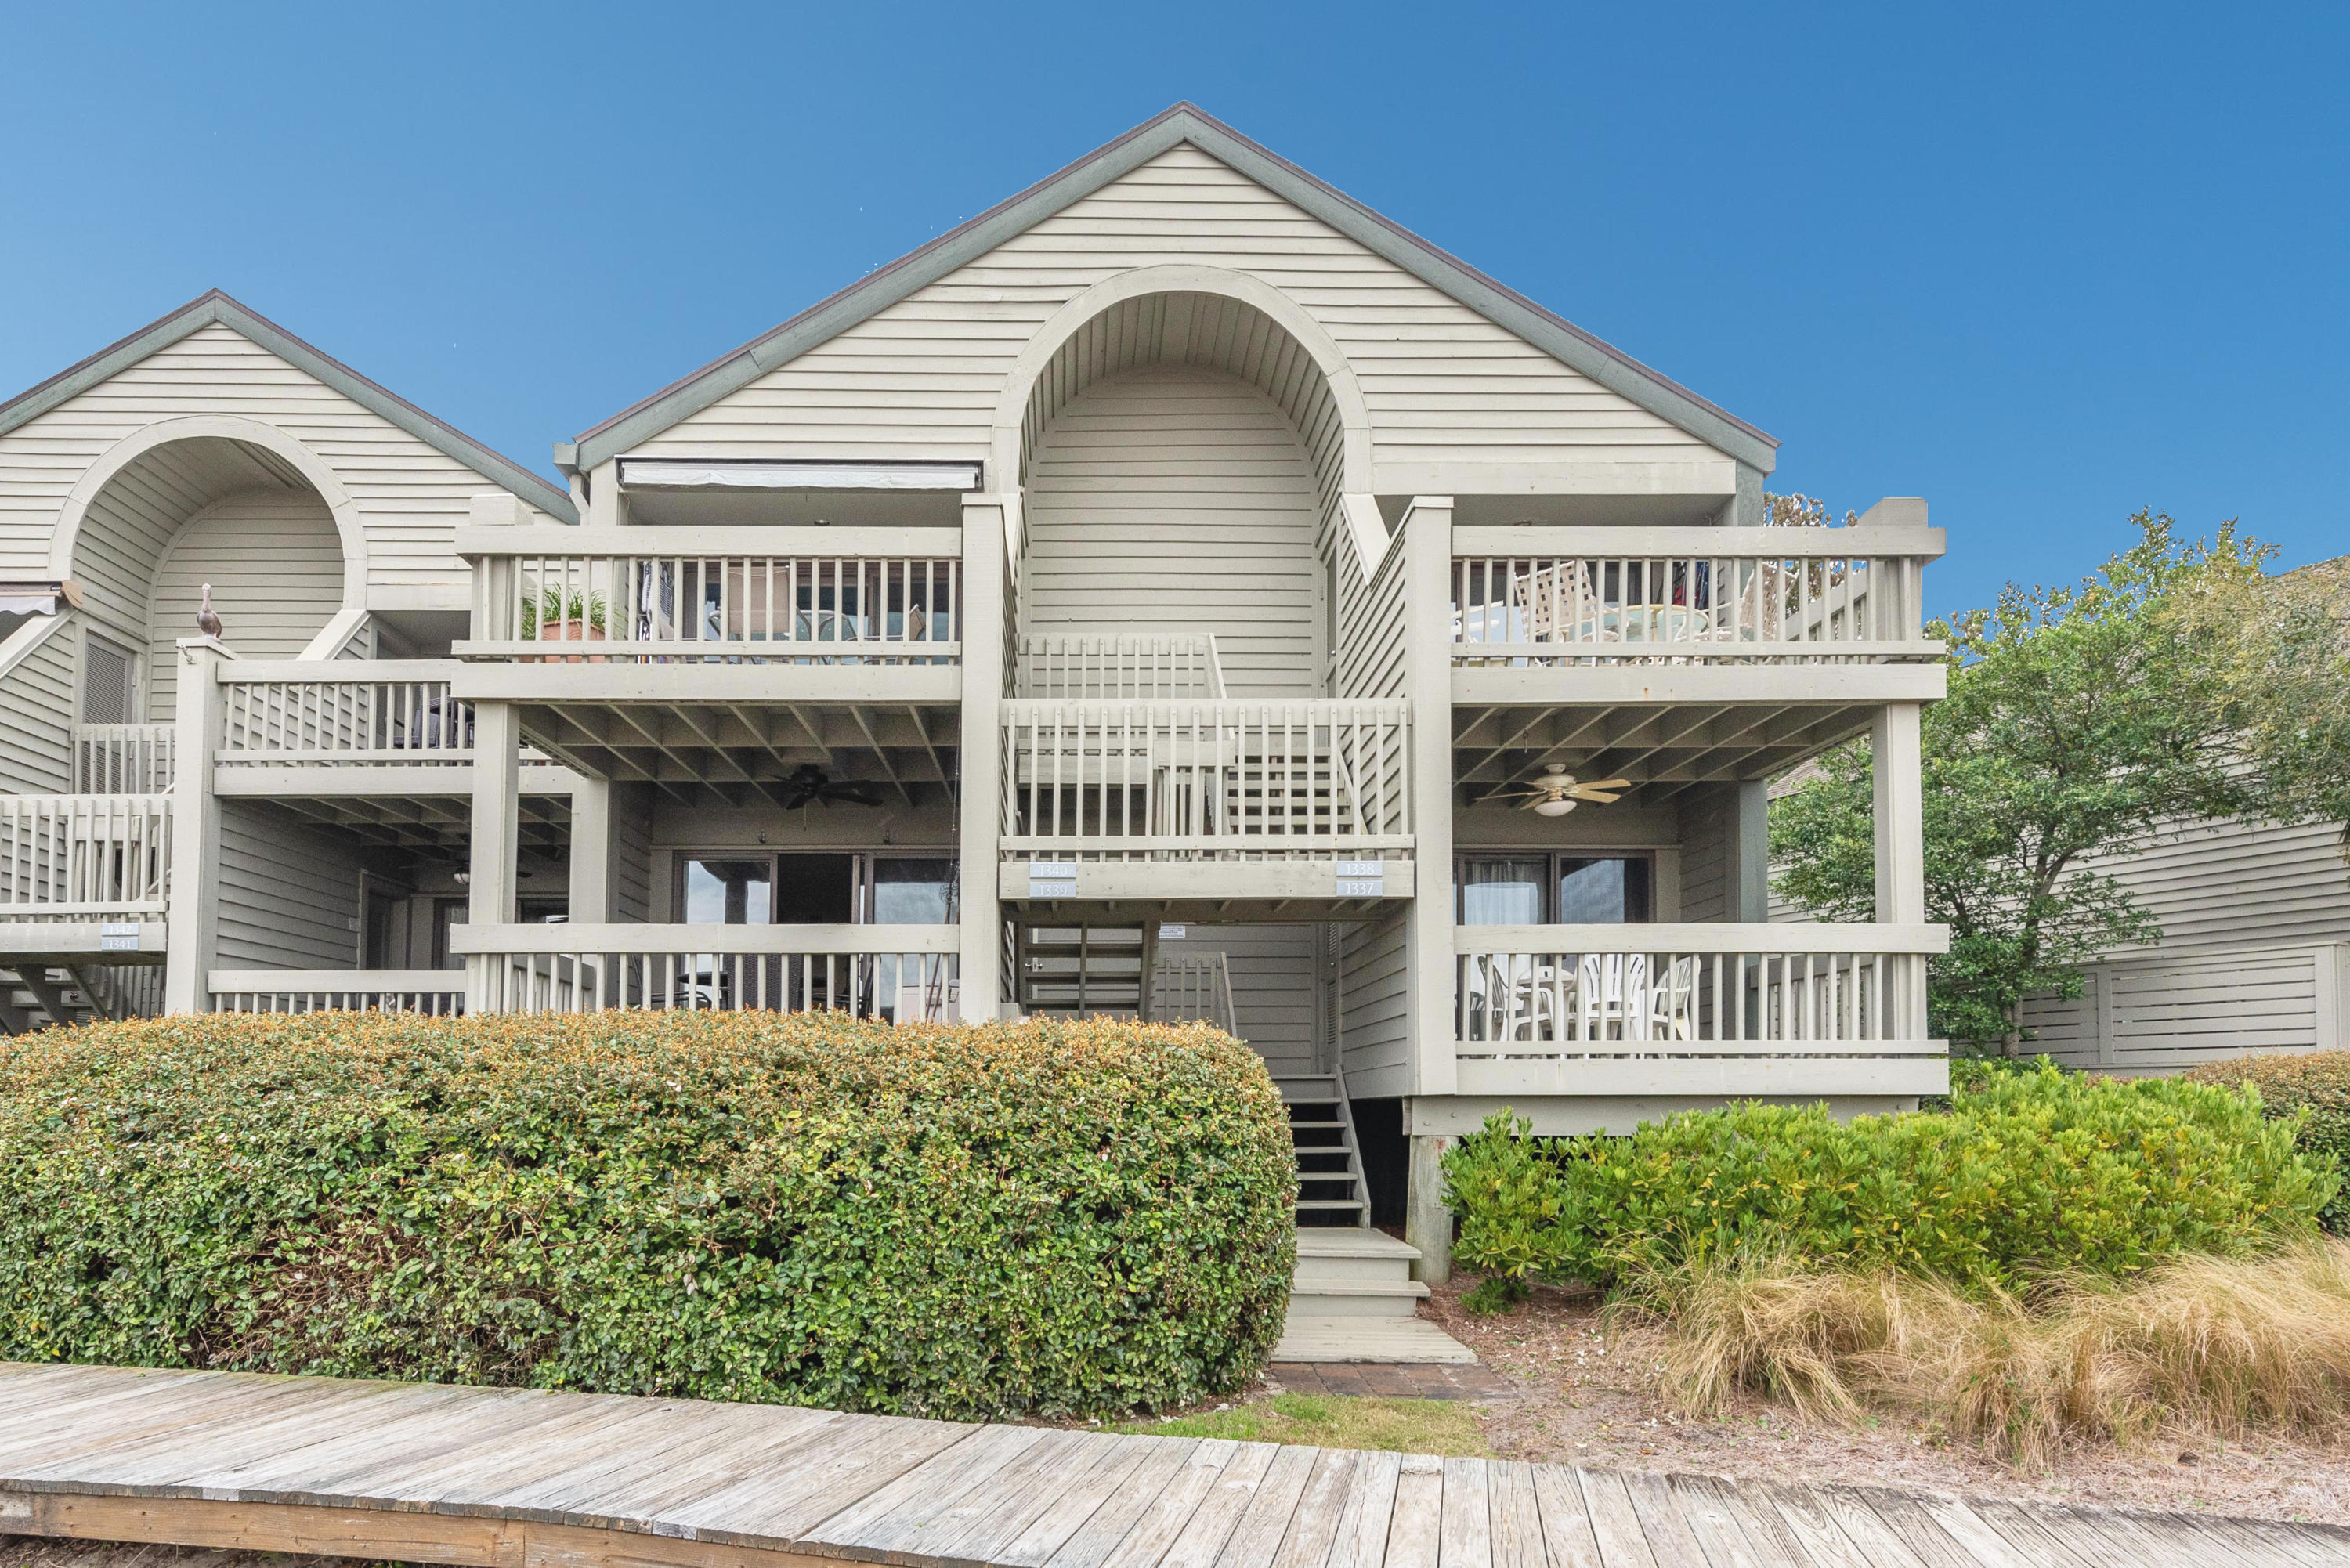 Seabrook Island Homes For Sale - 1339 Pelican Watch Villas, Seabrook Island, SC - 6